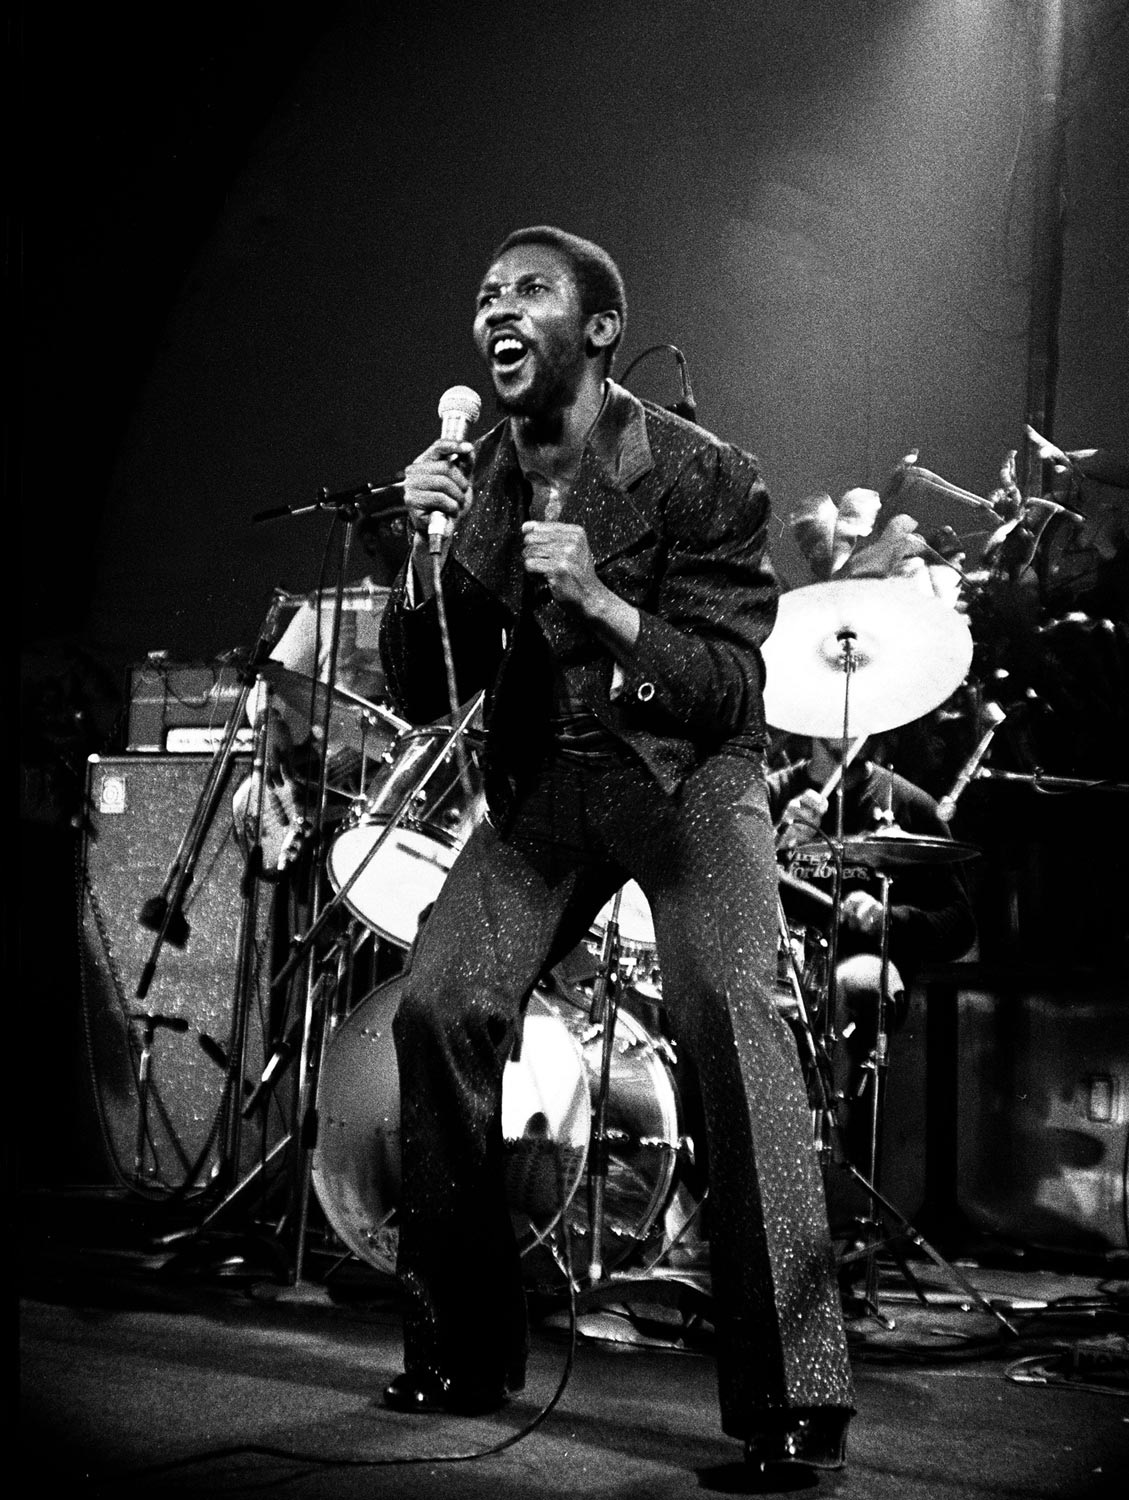 Toots, at a live performance in London, 1981. Photograph by UrbanImage.tv/Adrian Boot